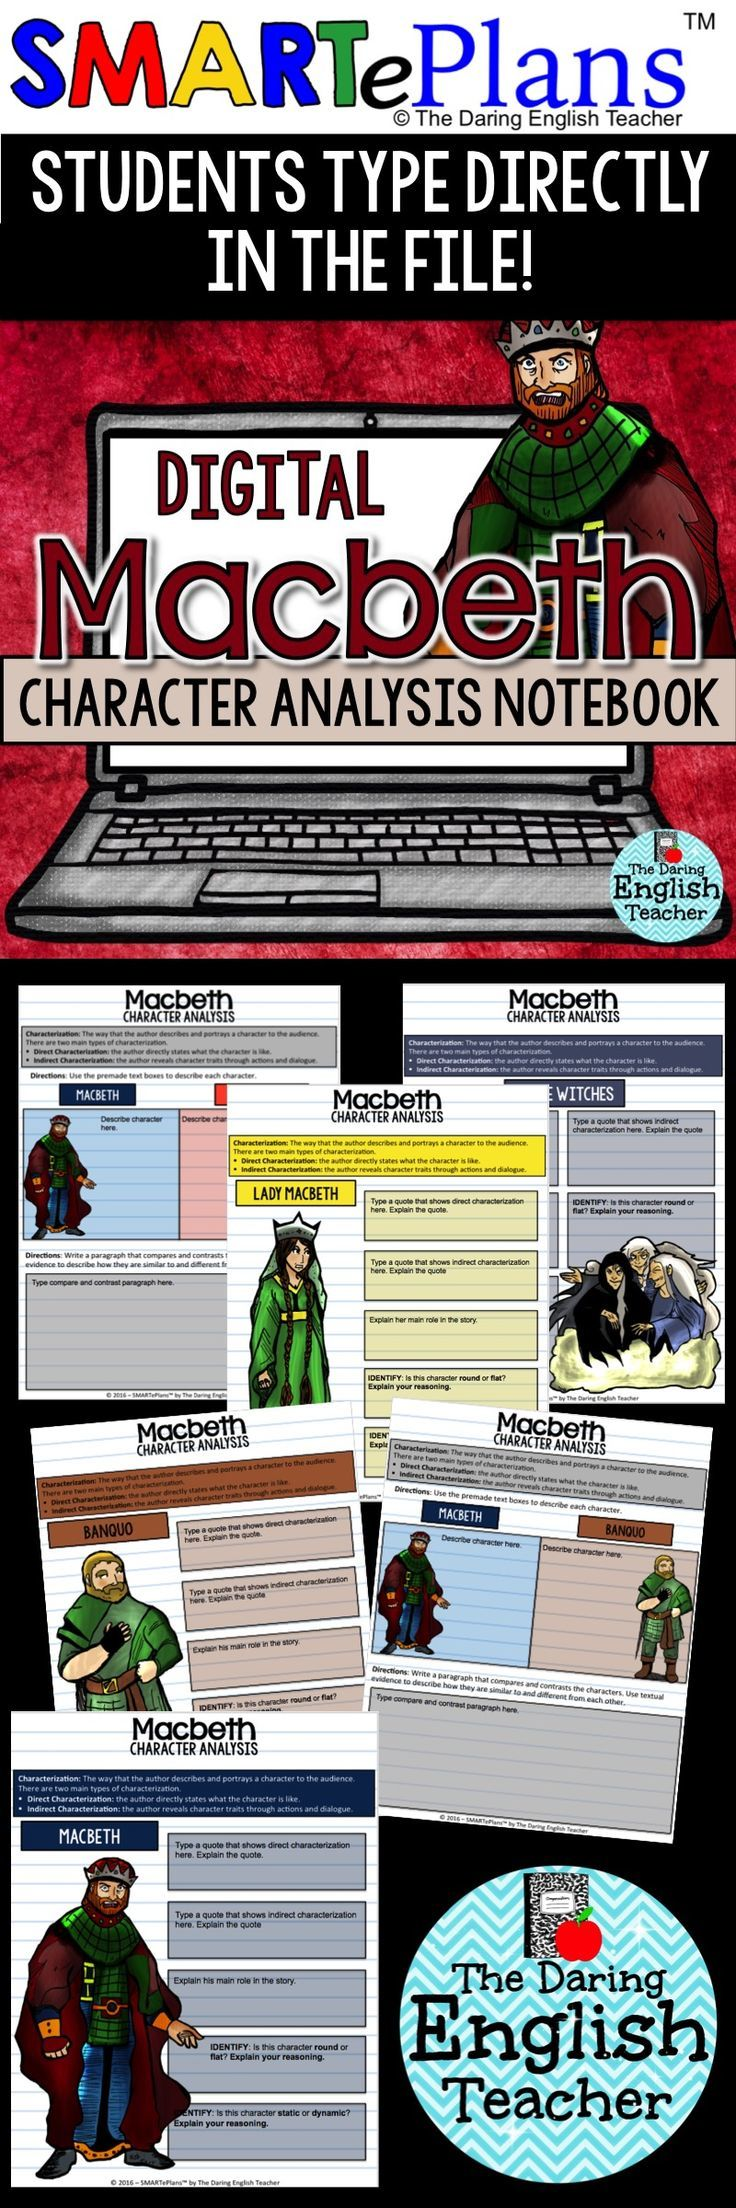 an analysis of the character of lady macbeth in macbeth by shakespeare A character analysis of macbeth and how he went from hero to killer in shakespeare's macbeth essay example a character analysis of macbeth in shakespeare's macbeth by the end of act v scene v it is clear that macbeth is.